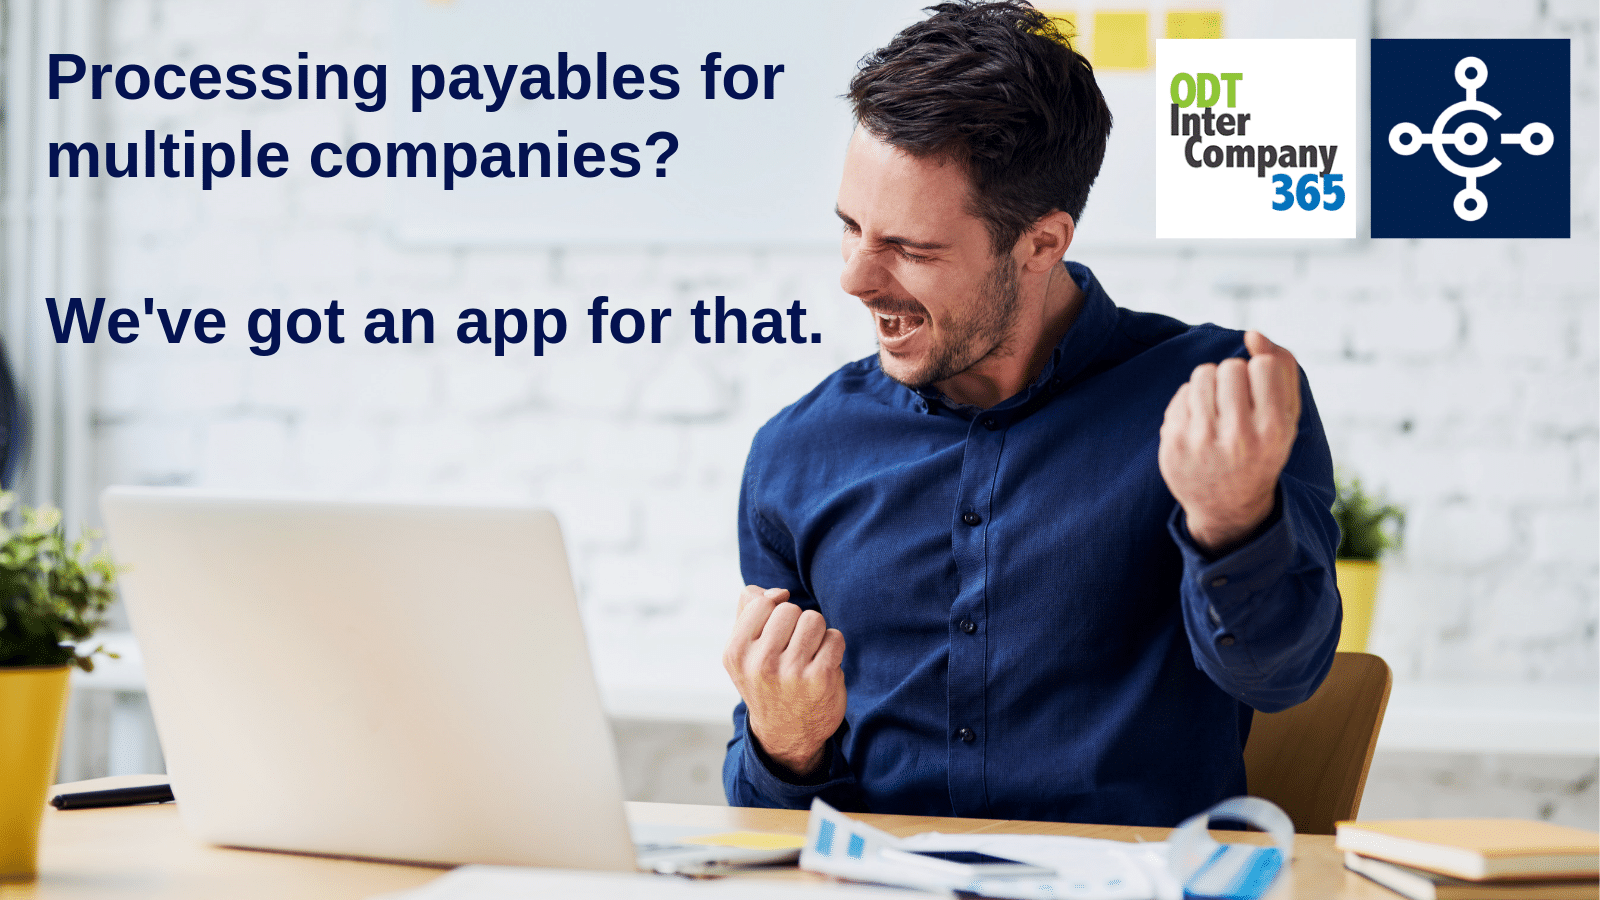 Processing intercompany payables? We've got an app for that.